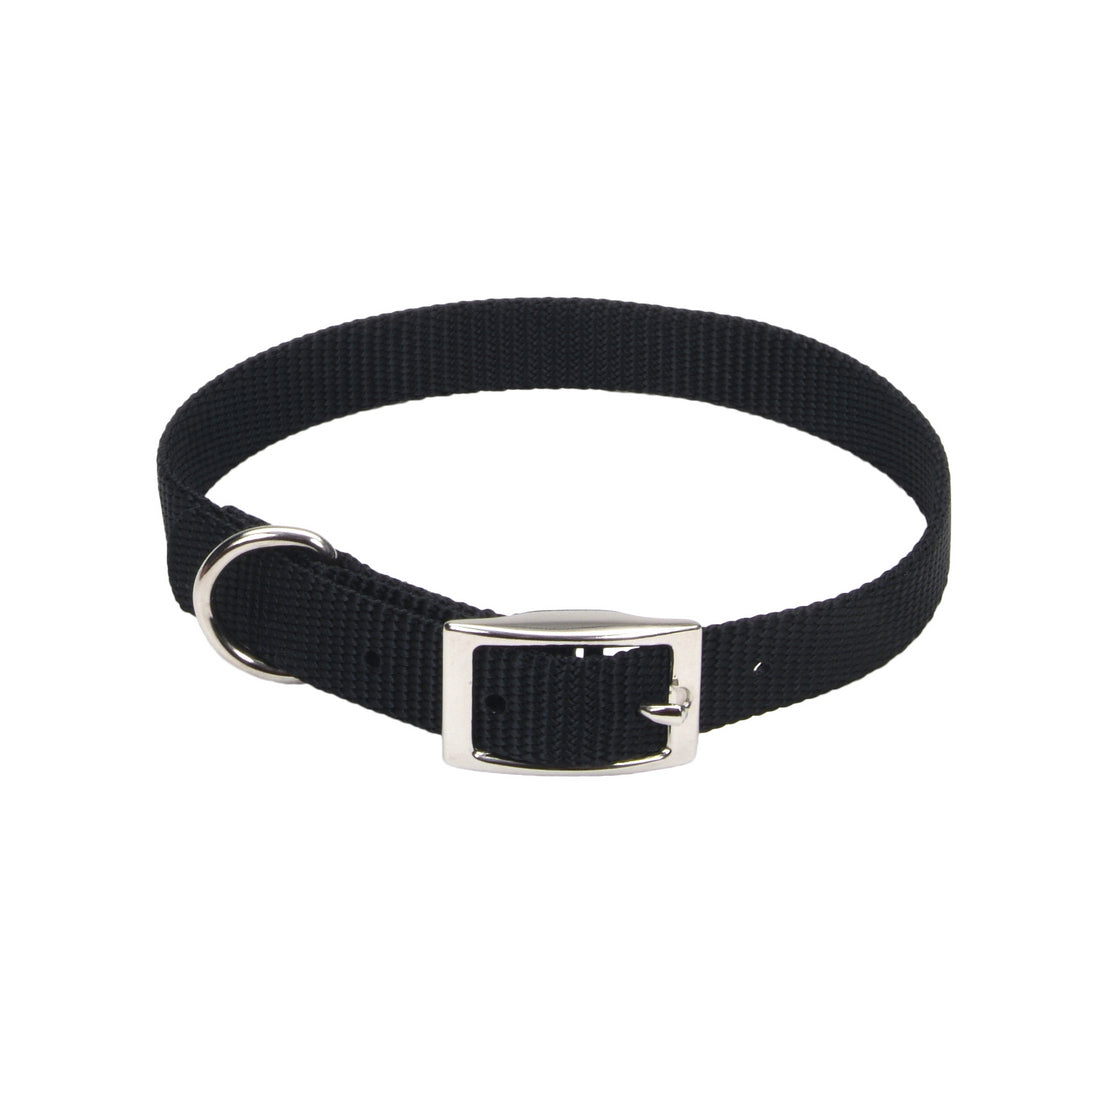 "Coastal Nylon Collar 16"" - 5/8"" Black"